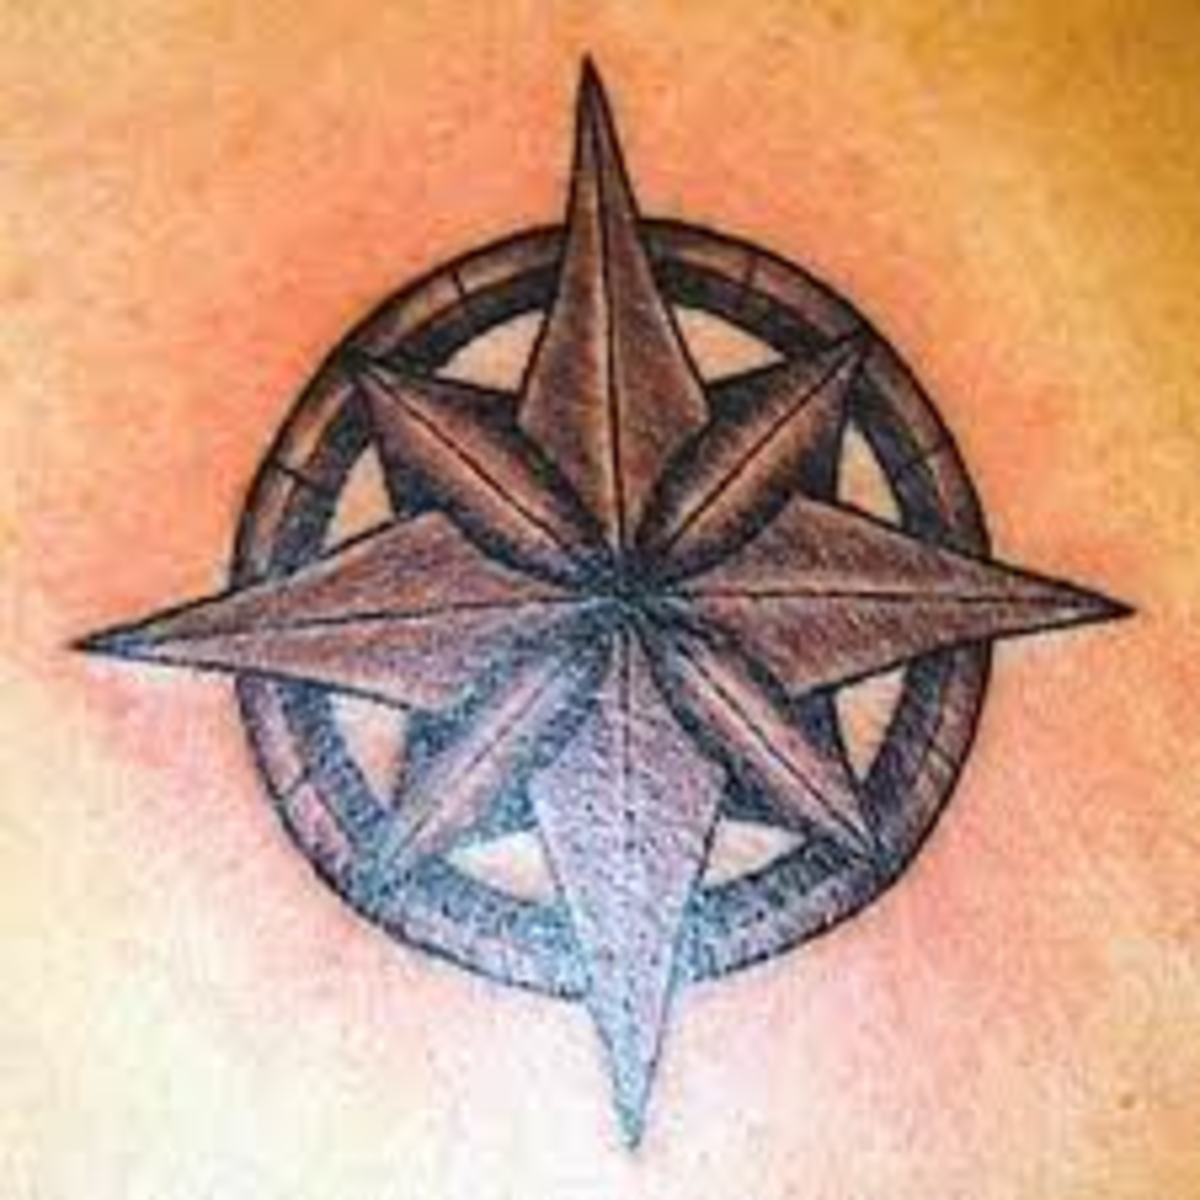 great-star-tattoo-ideas-for-men-and-women-star-tattoo-meanings-and-star-variations